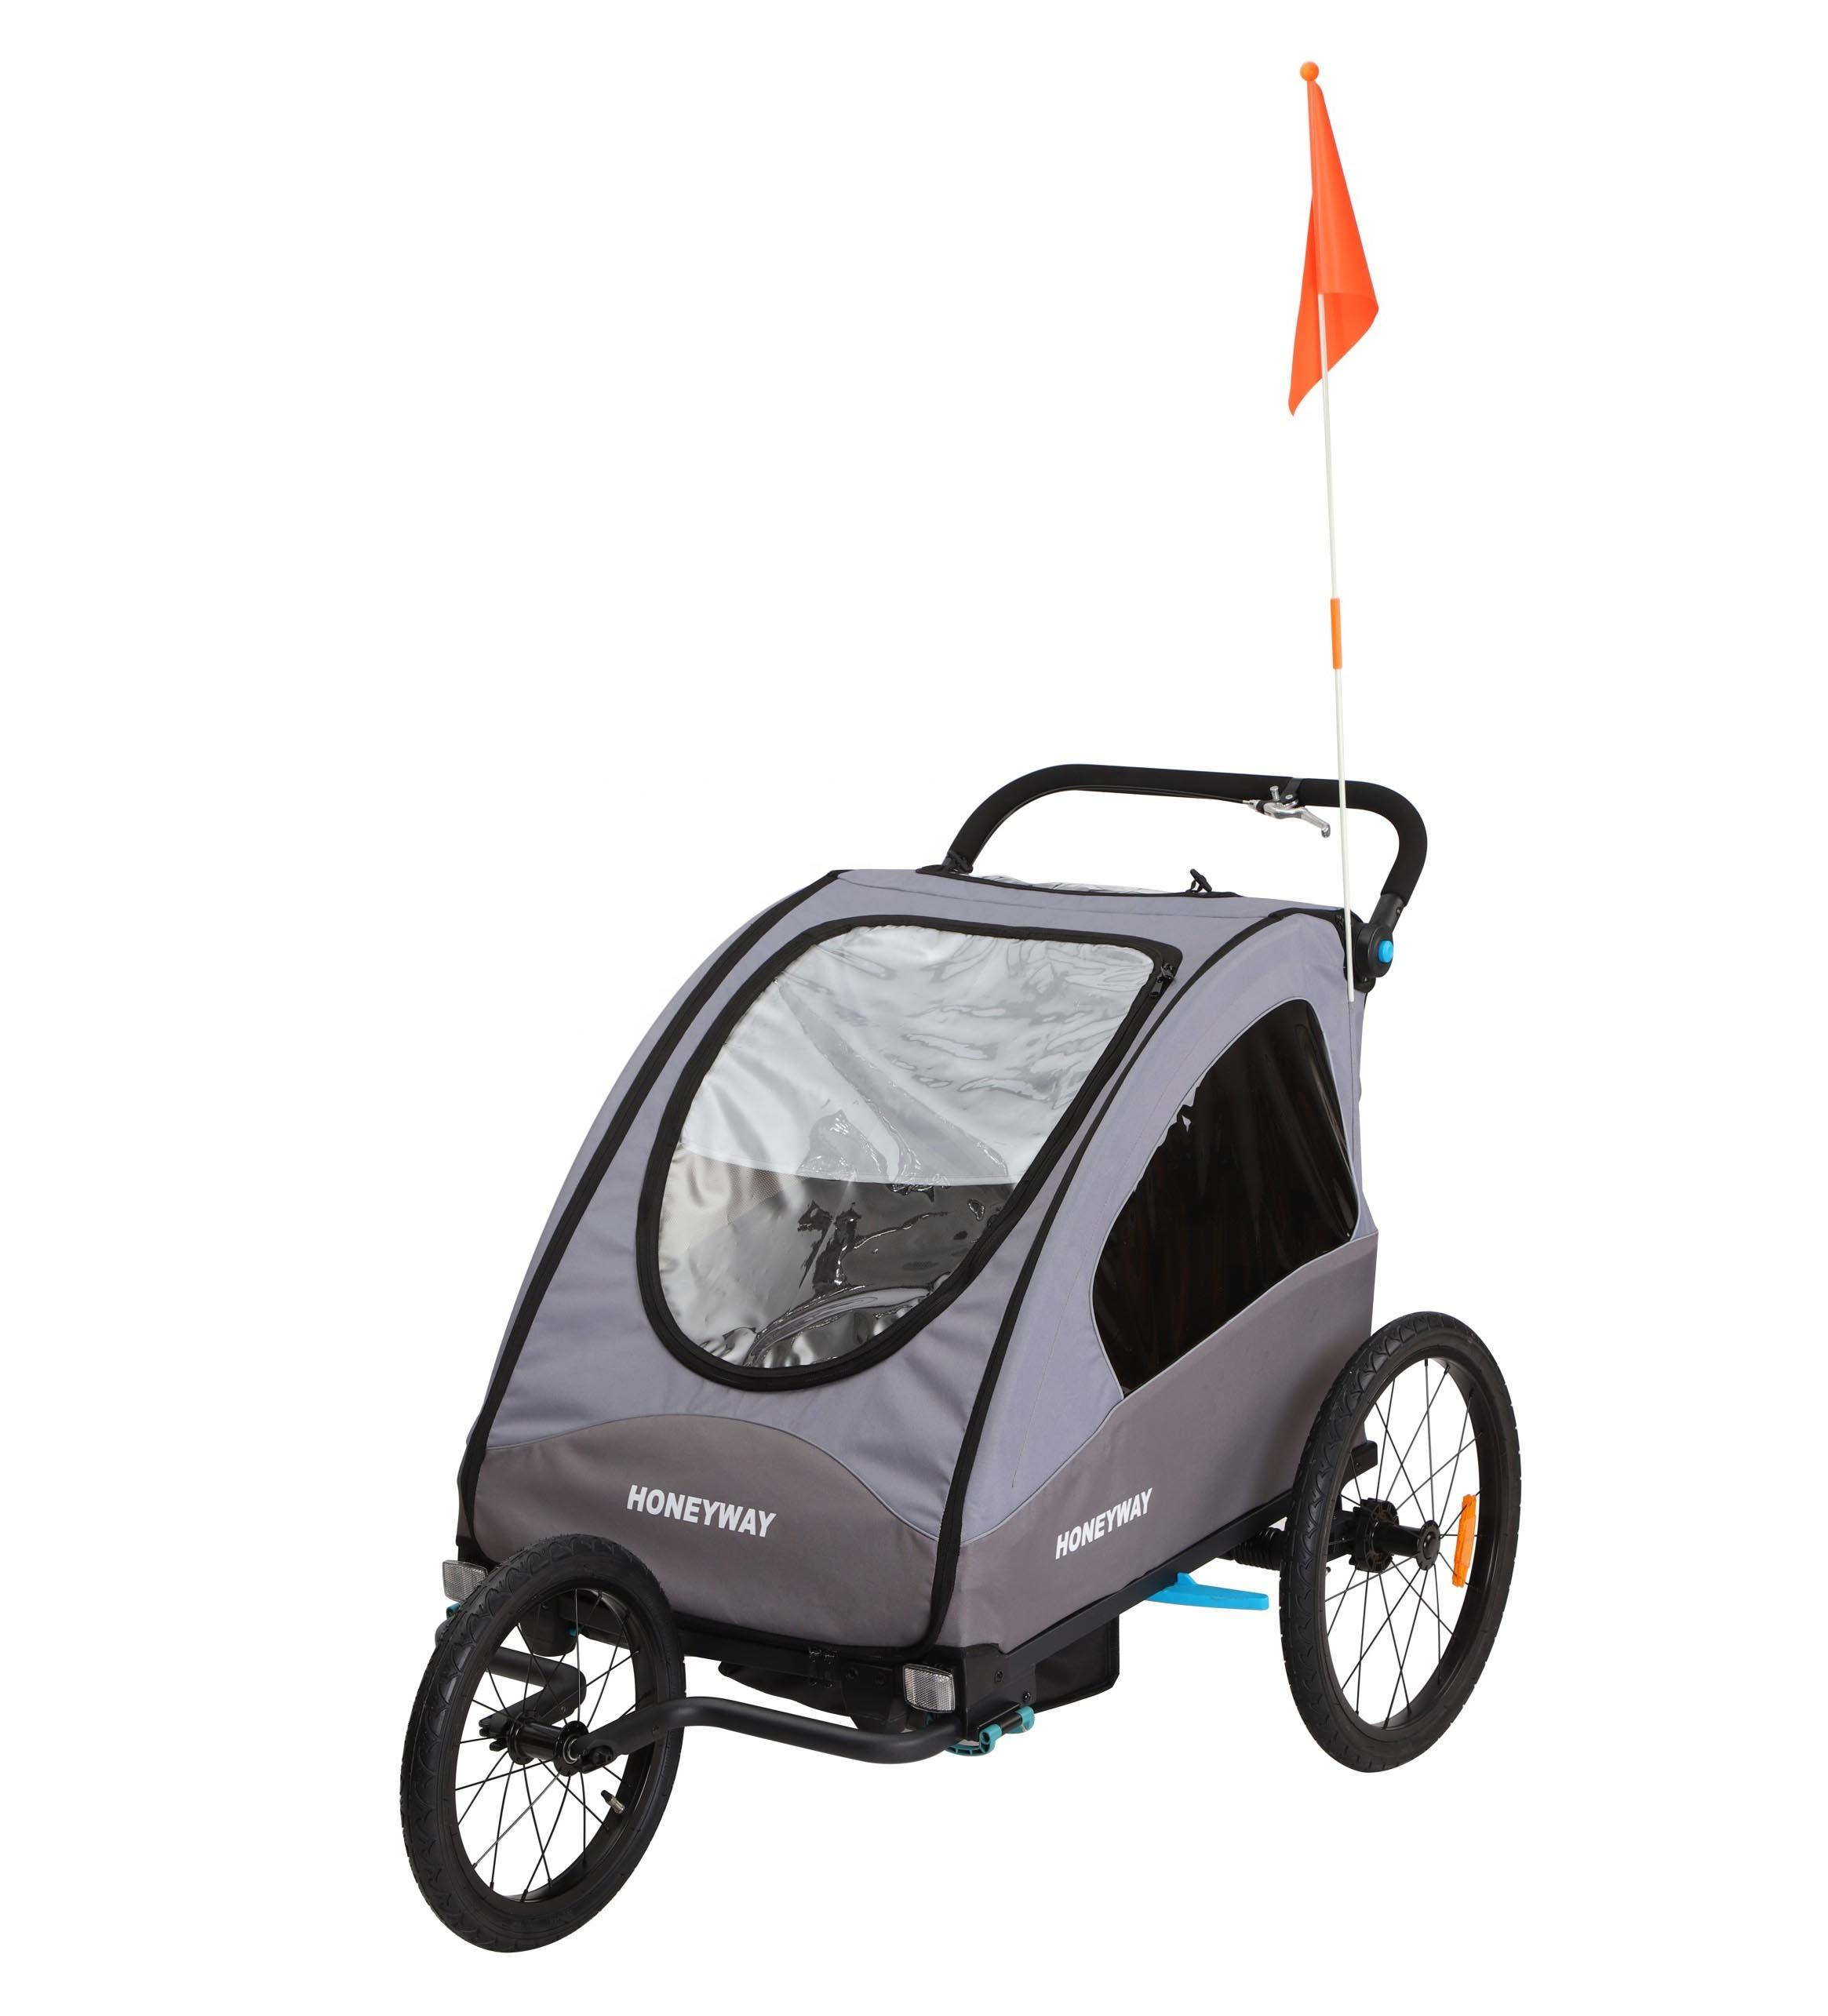 Foldable kids twin bicycle bike trailer and baby stroller with EN15918